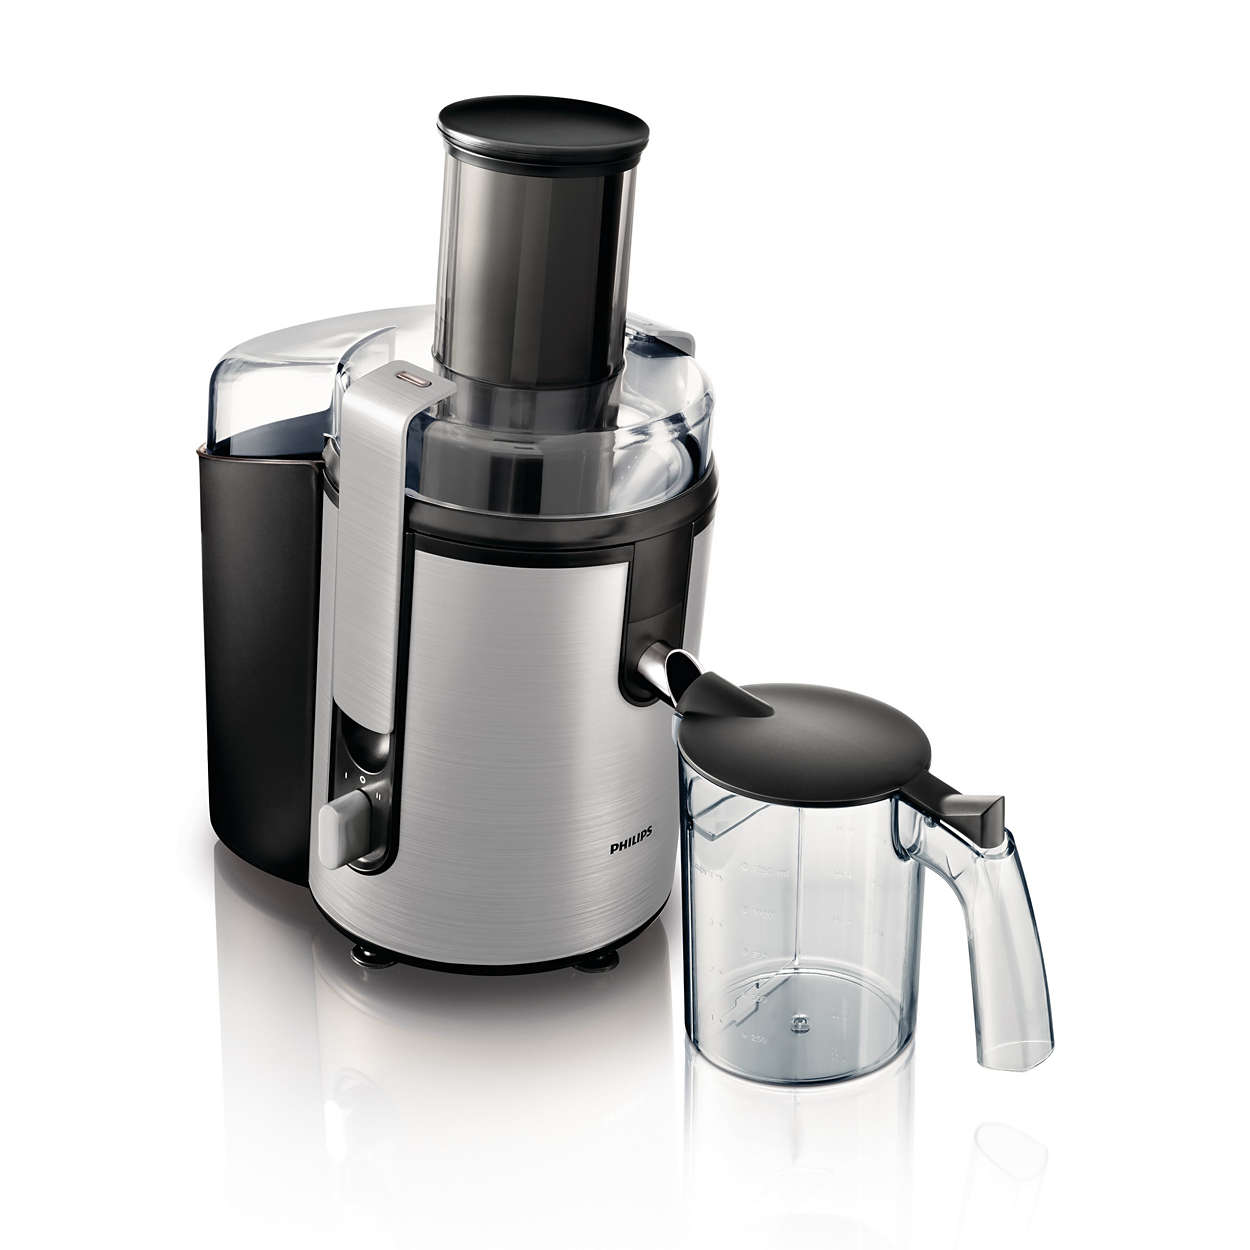 aluminium collection juicer hr1866 00 philips. Black Bedroom Furniture Sets. Home Design Ideas